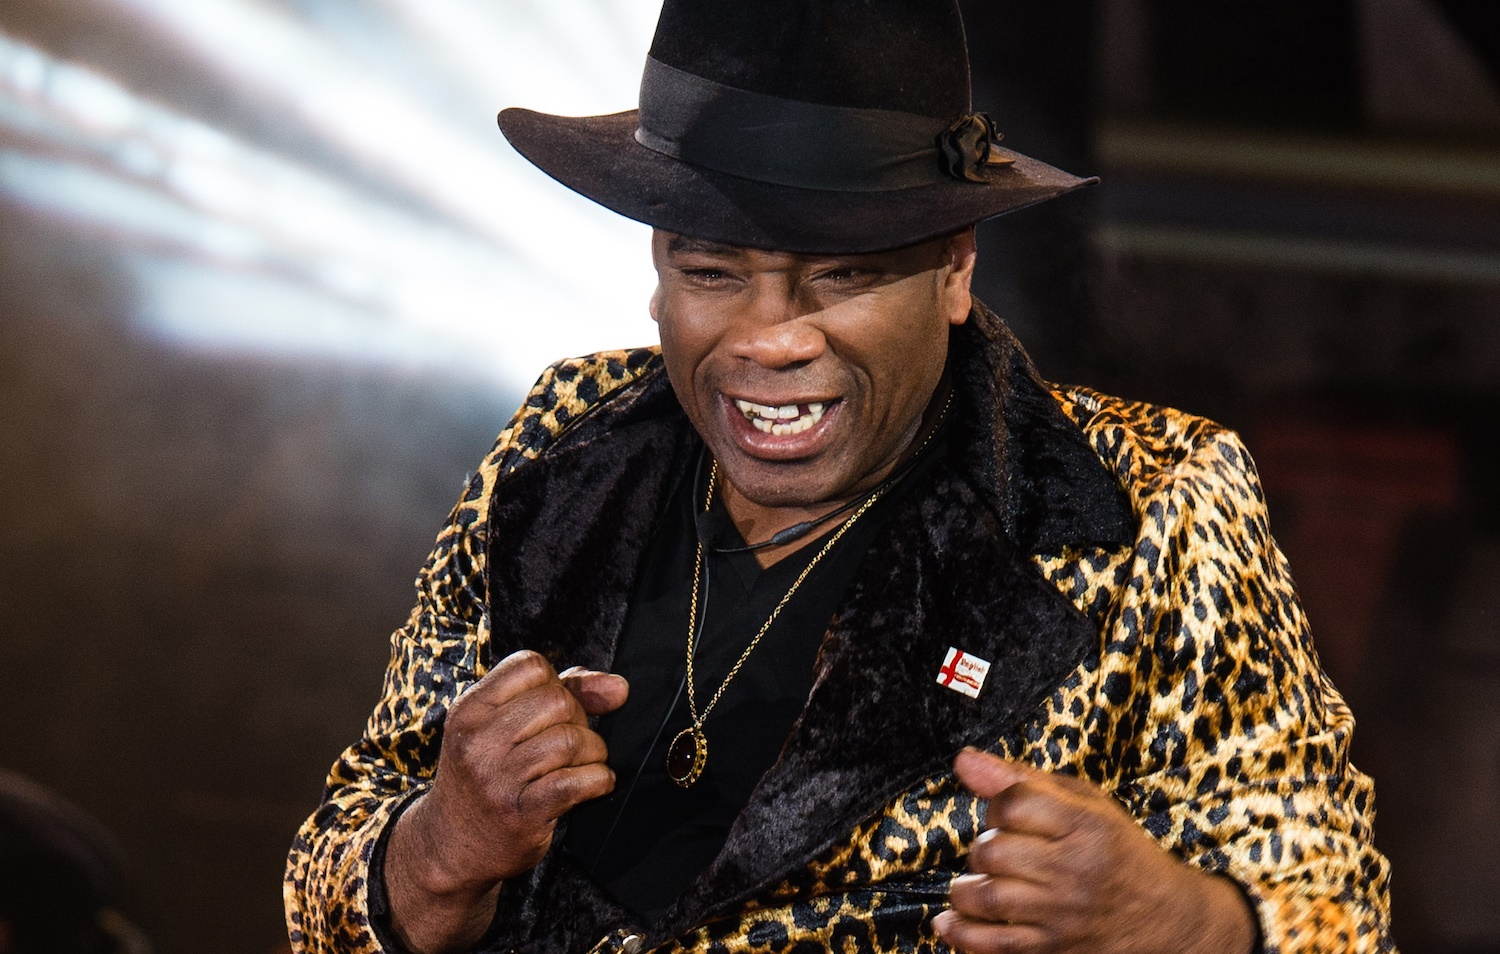 BOREHAMWOOD, ENGLAND - JANUARY 05: Winston McKenzie enters the Celebrity Big Brother House at Elstree Studios on January 5, 2016 in Borehamwood, England. (Photo by Jeff Spicer/Getty Images)